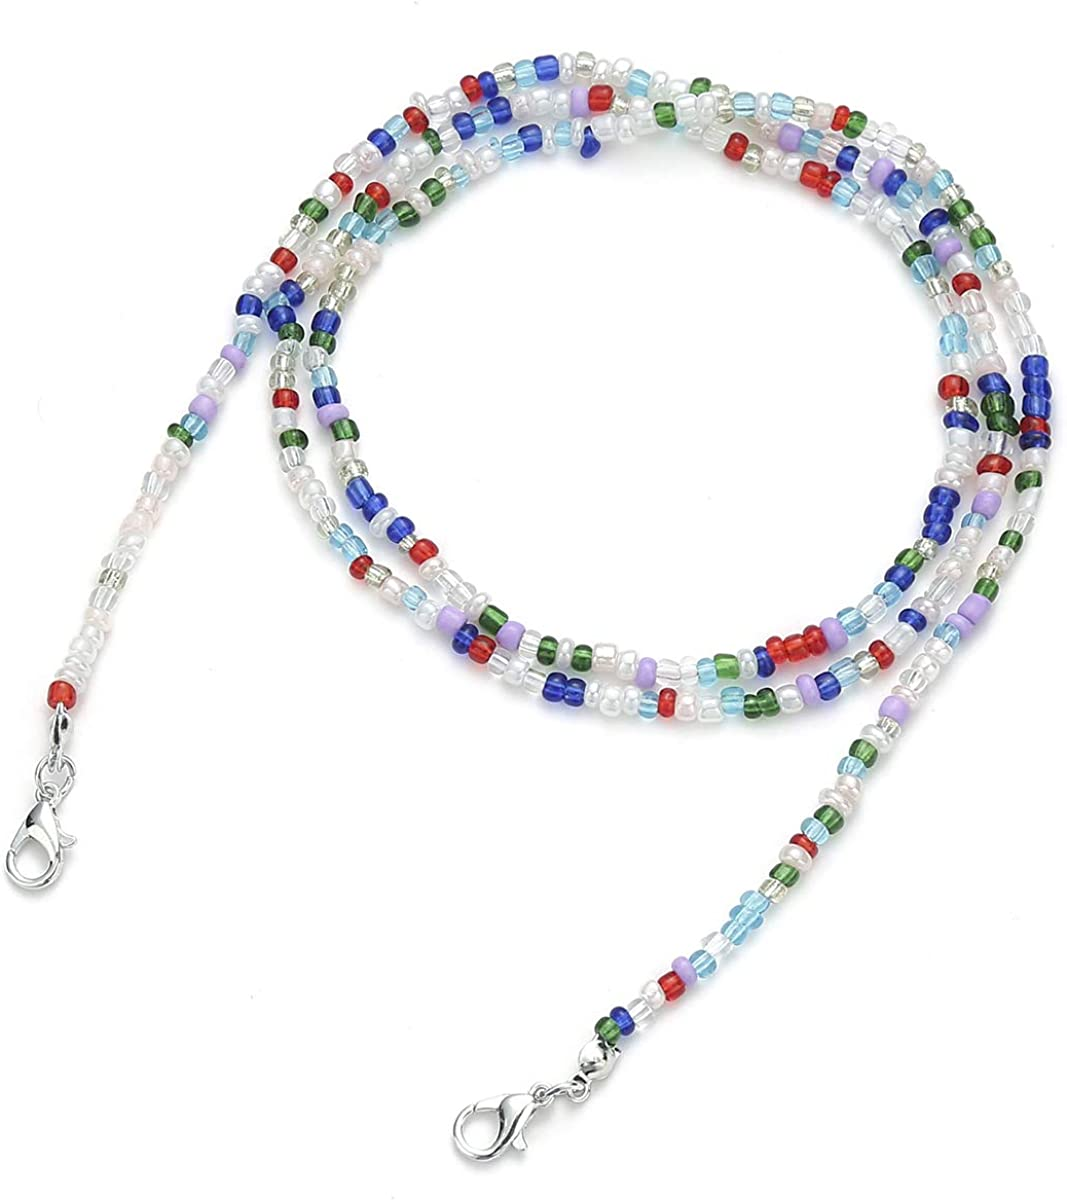 Glaring 4-6 Pack Face Mask Lanyard Chain Strap Colorful Beads Chain Holder for Women Kids Comfortable Around The Neck